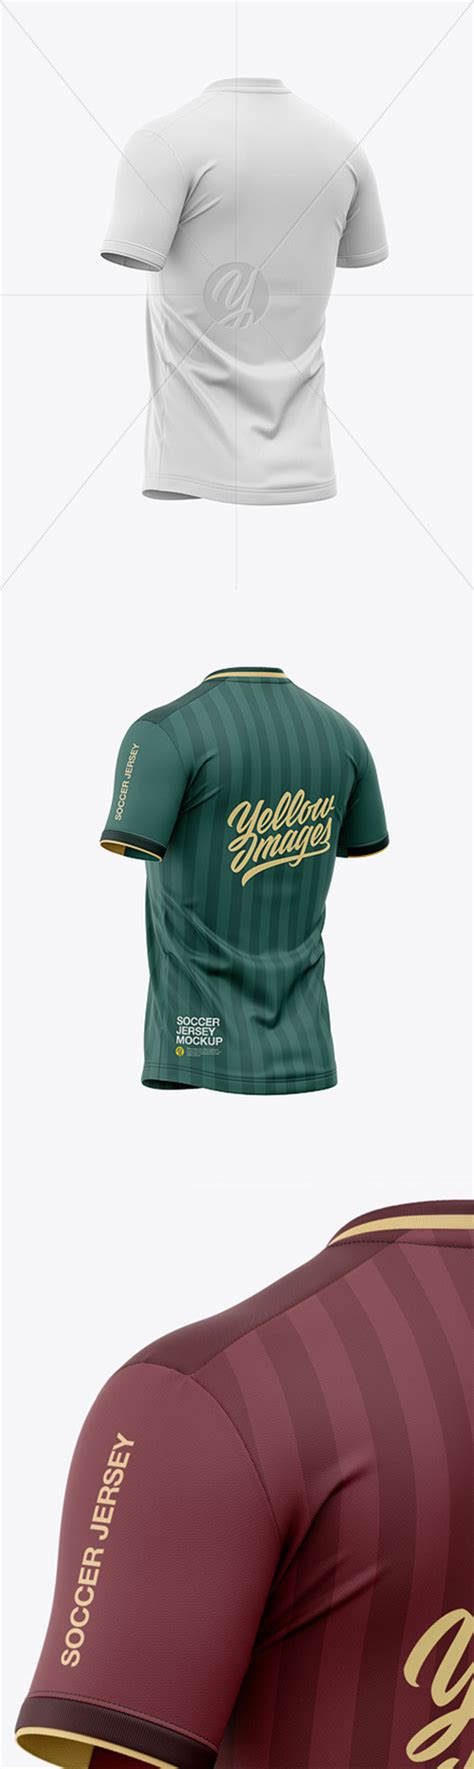 Fairy simple to apply your design and change the color of individual parts. 23+ Mens Lace Neck Hockey Jersey Mockup Front View ...